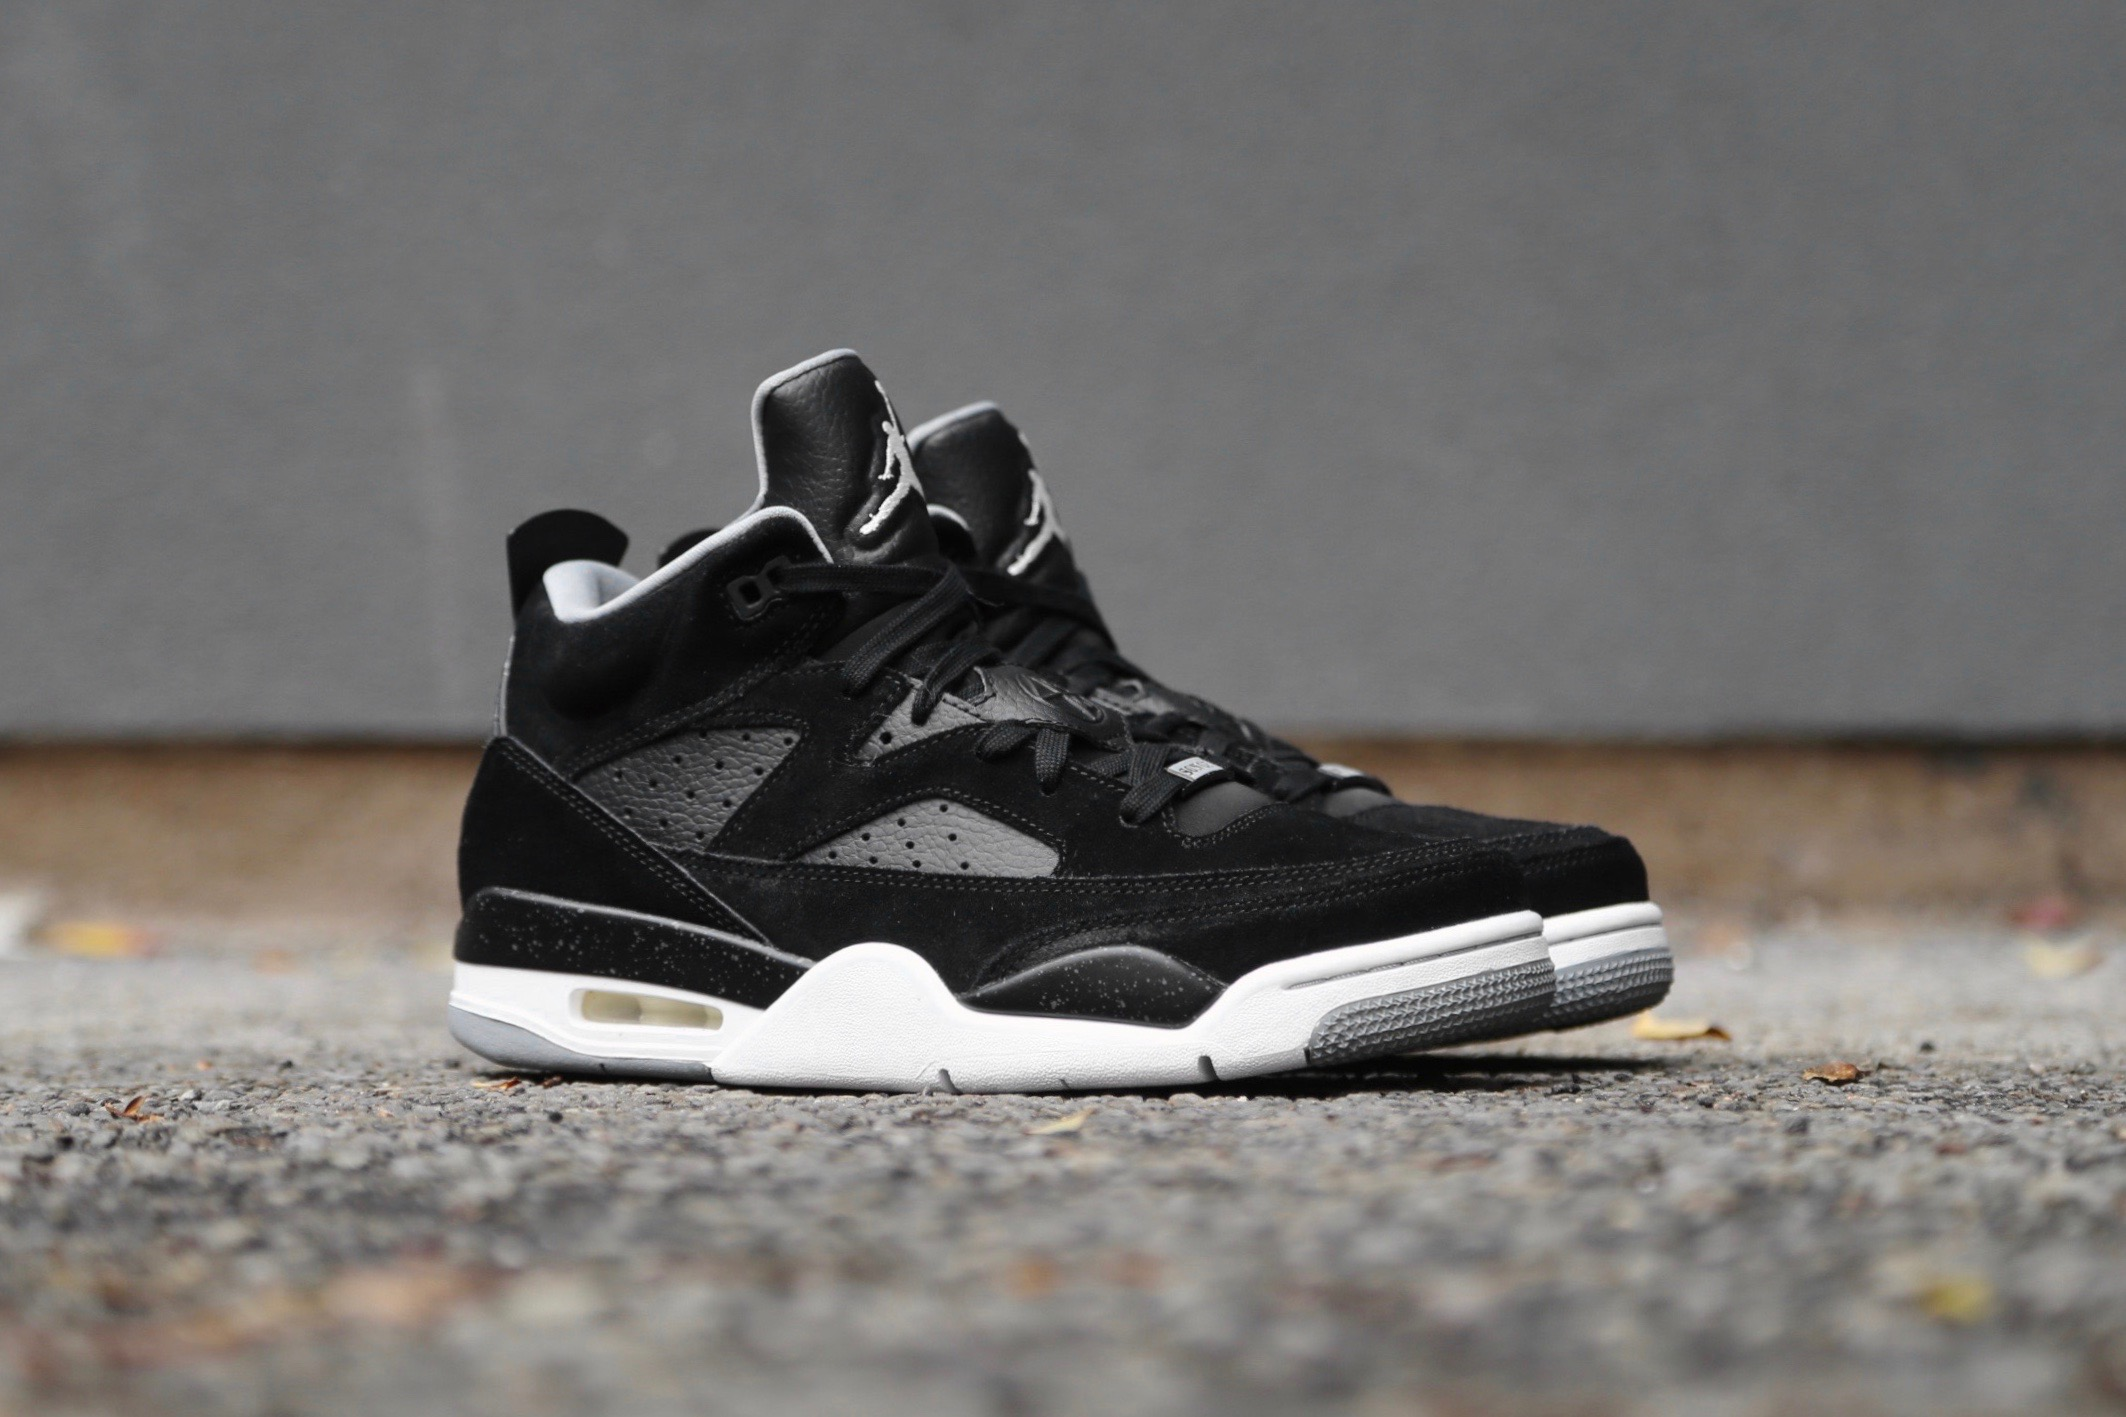 separation shoes a7cef 03aa9 Jordan Son Of Mars Low – Black   Particle Grey   Iron Grey   White ...